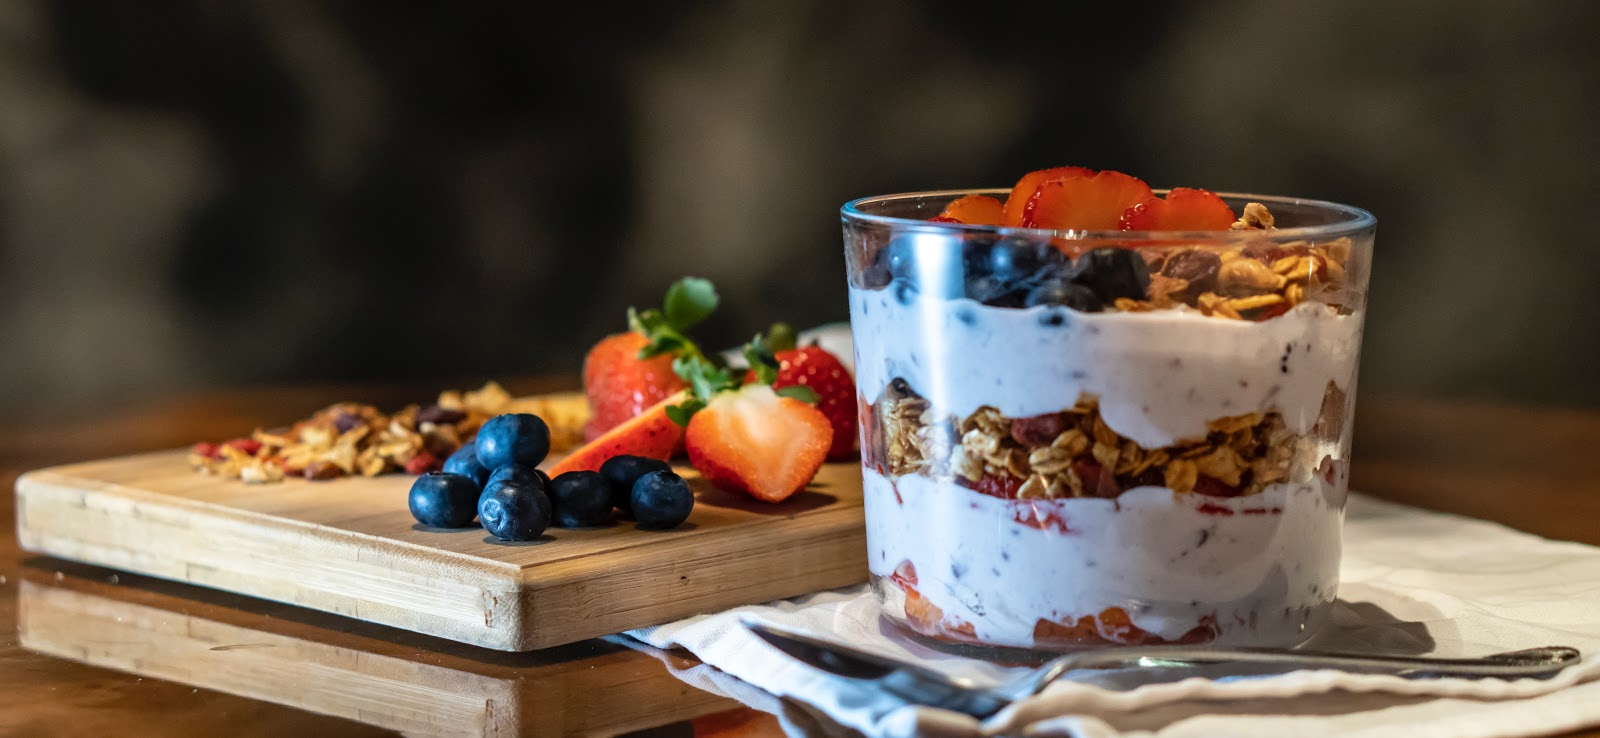 Yogurt serving in a cup with sliced fruits on a cutting board.